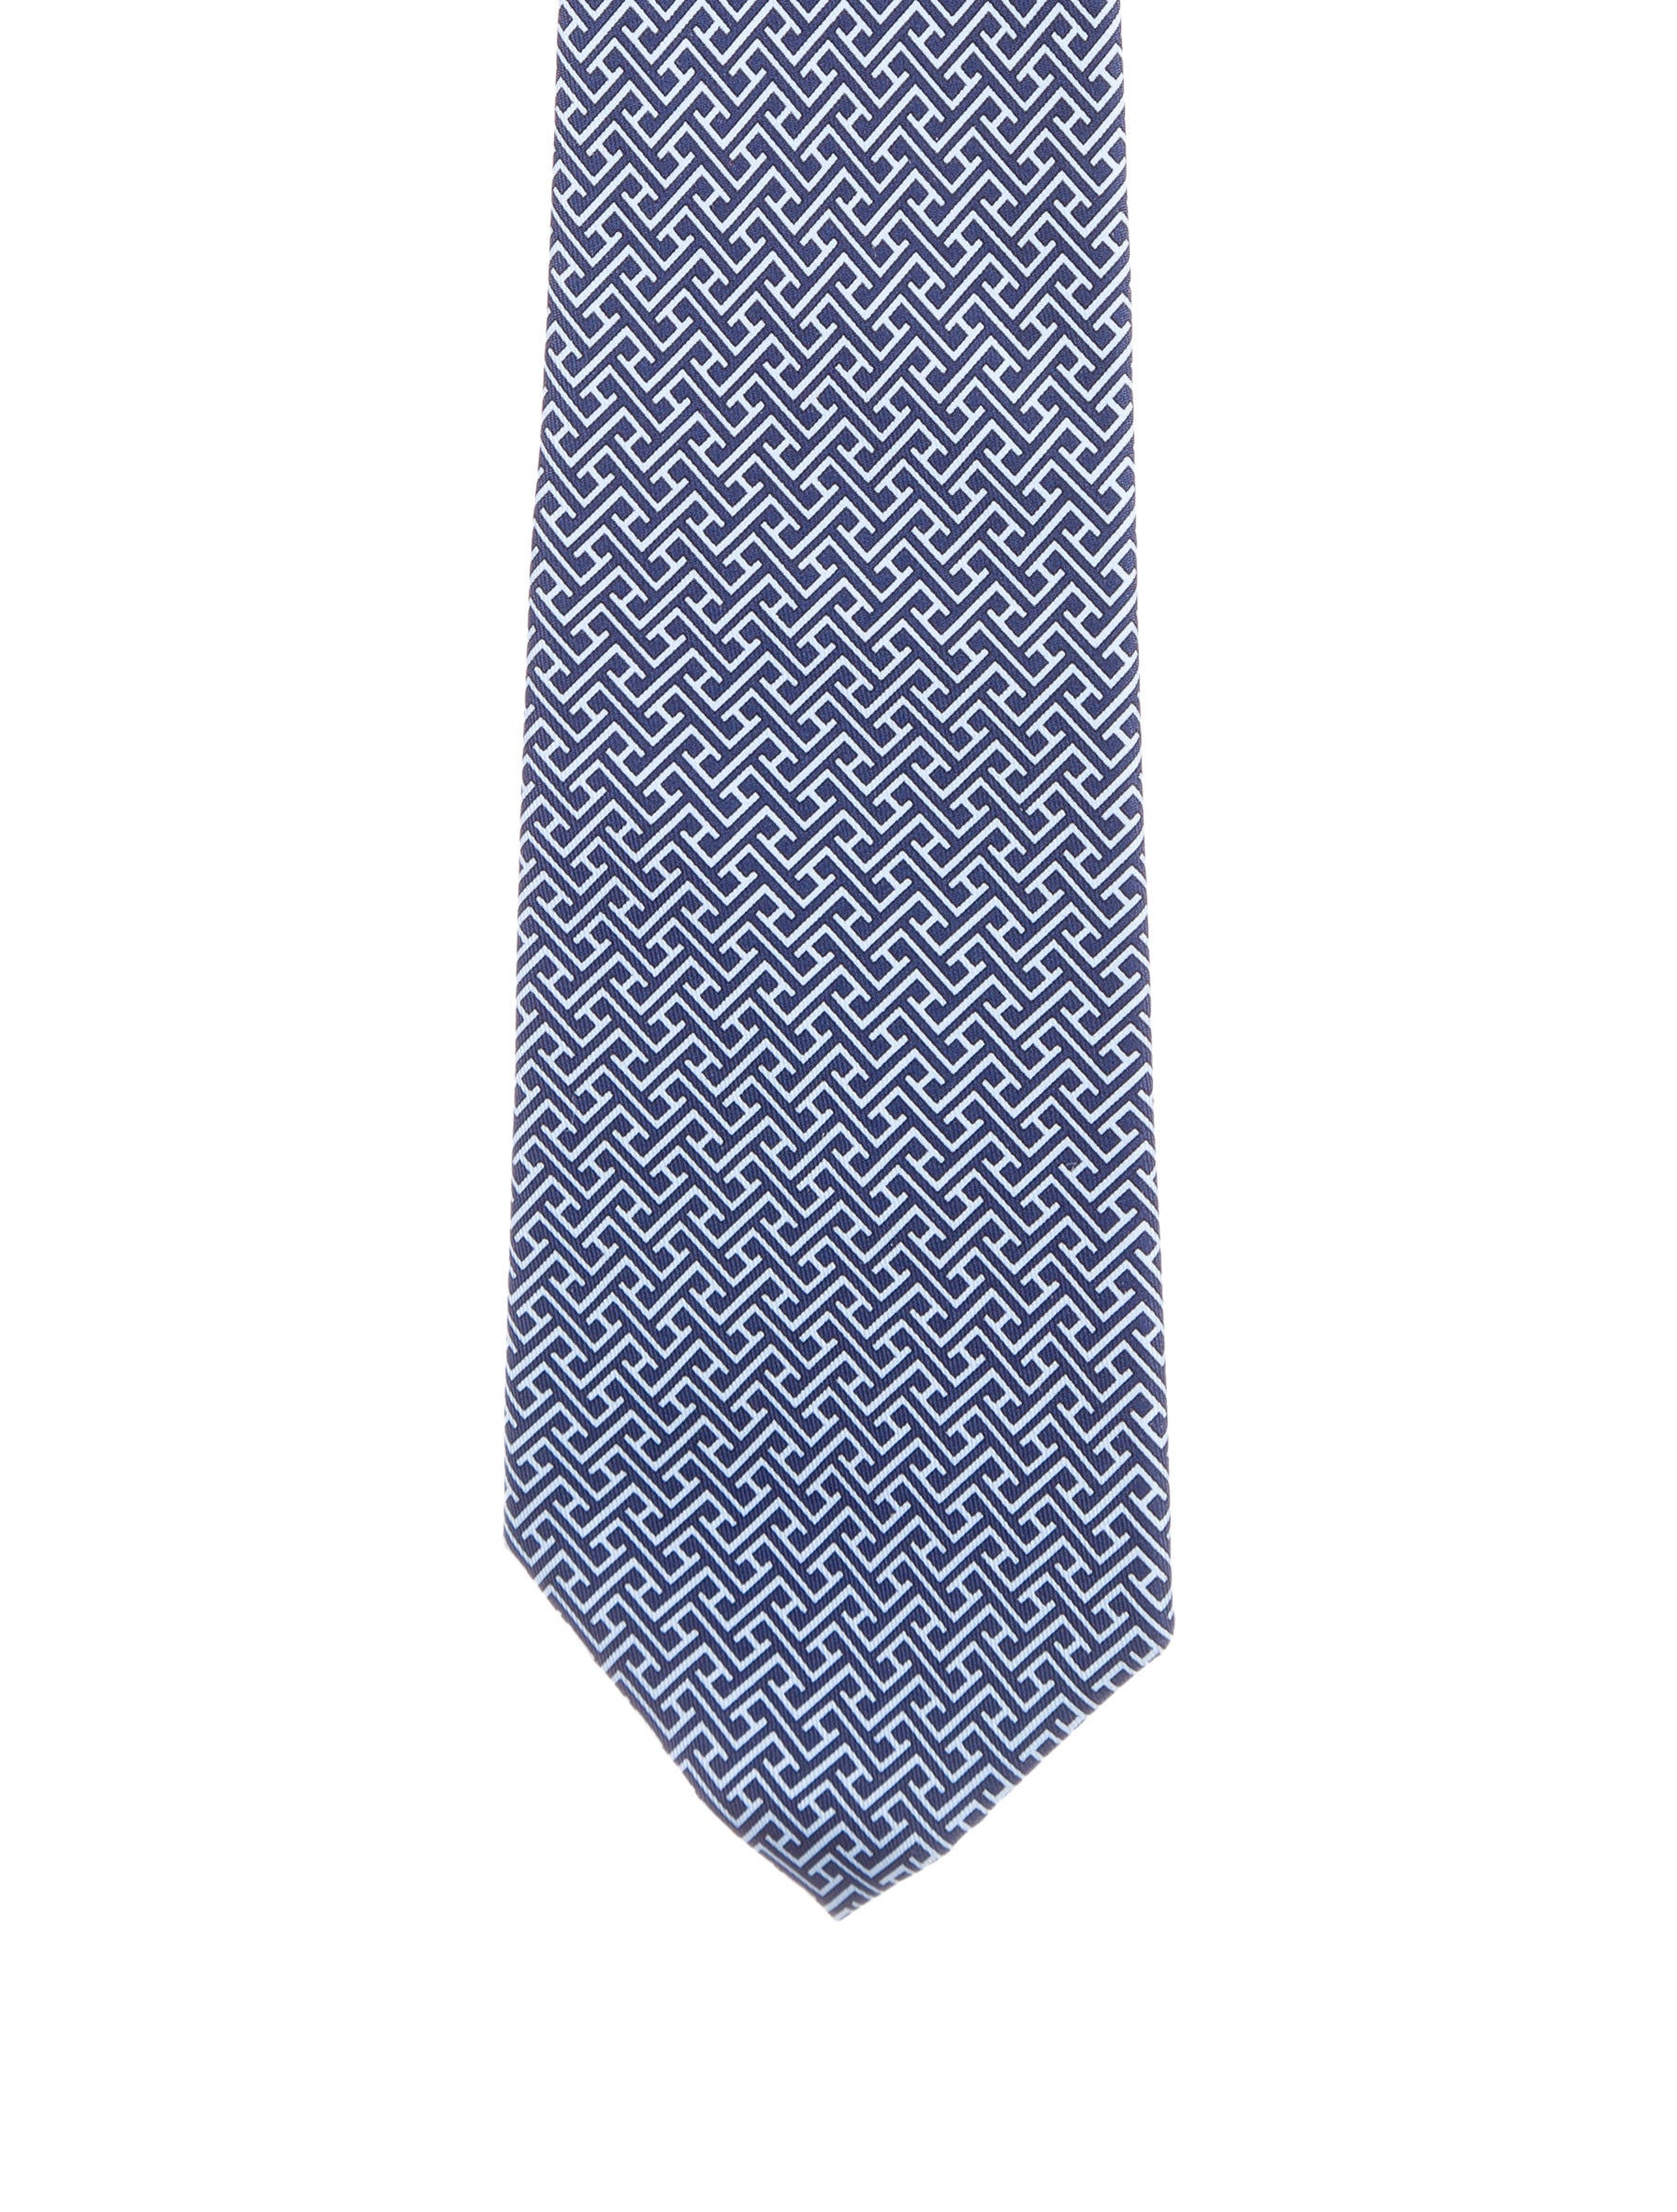 herm232s h silk tie suiting accessories her117377 the